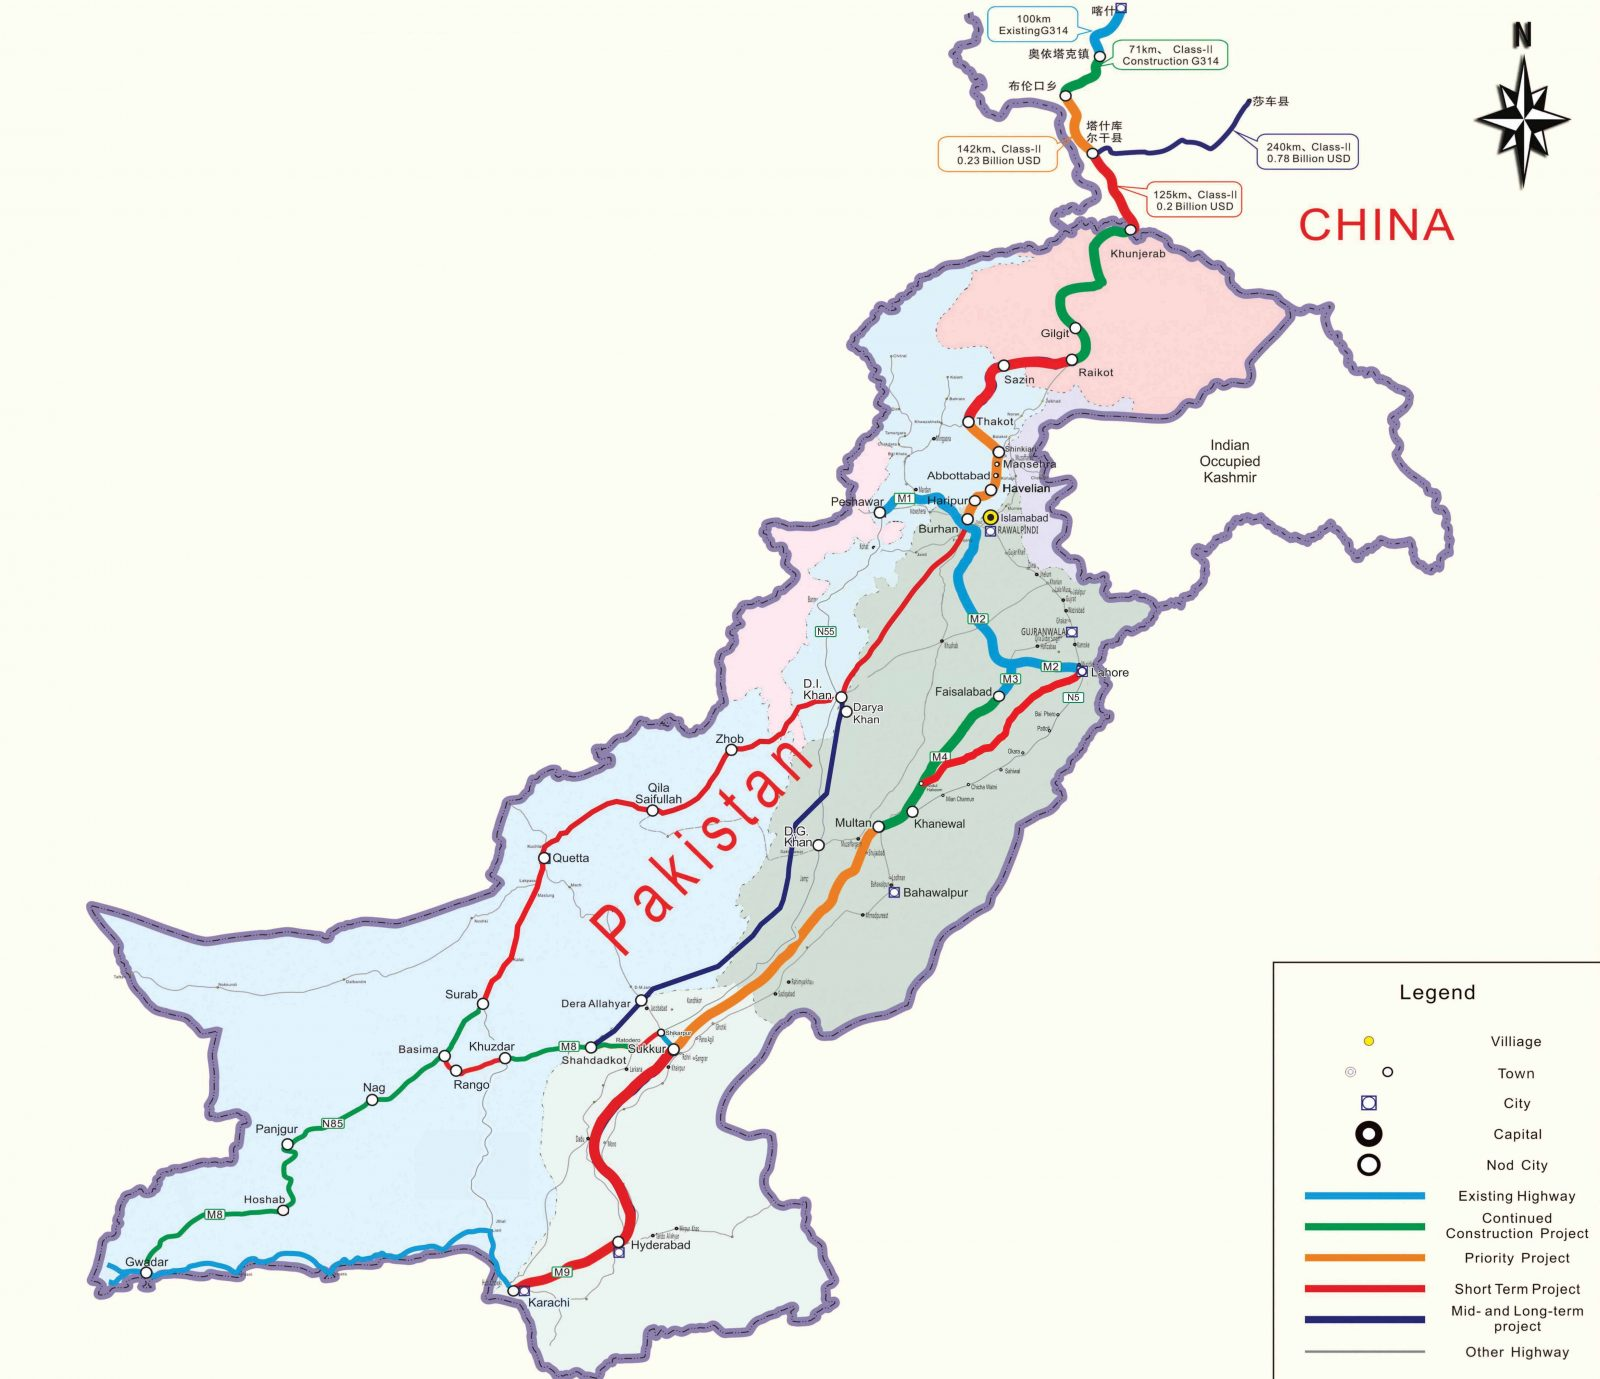 Highway Network of cpec